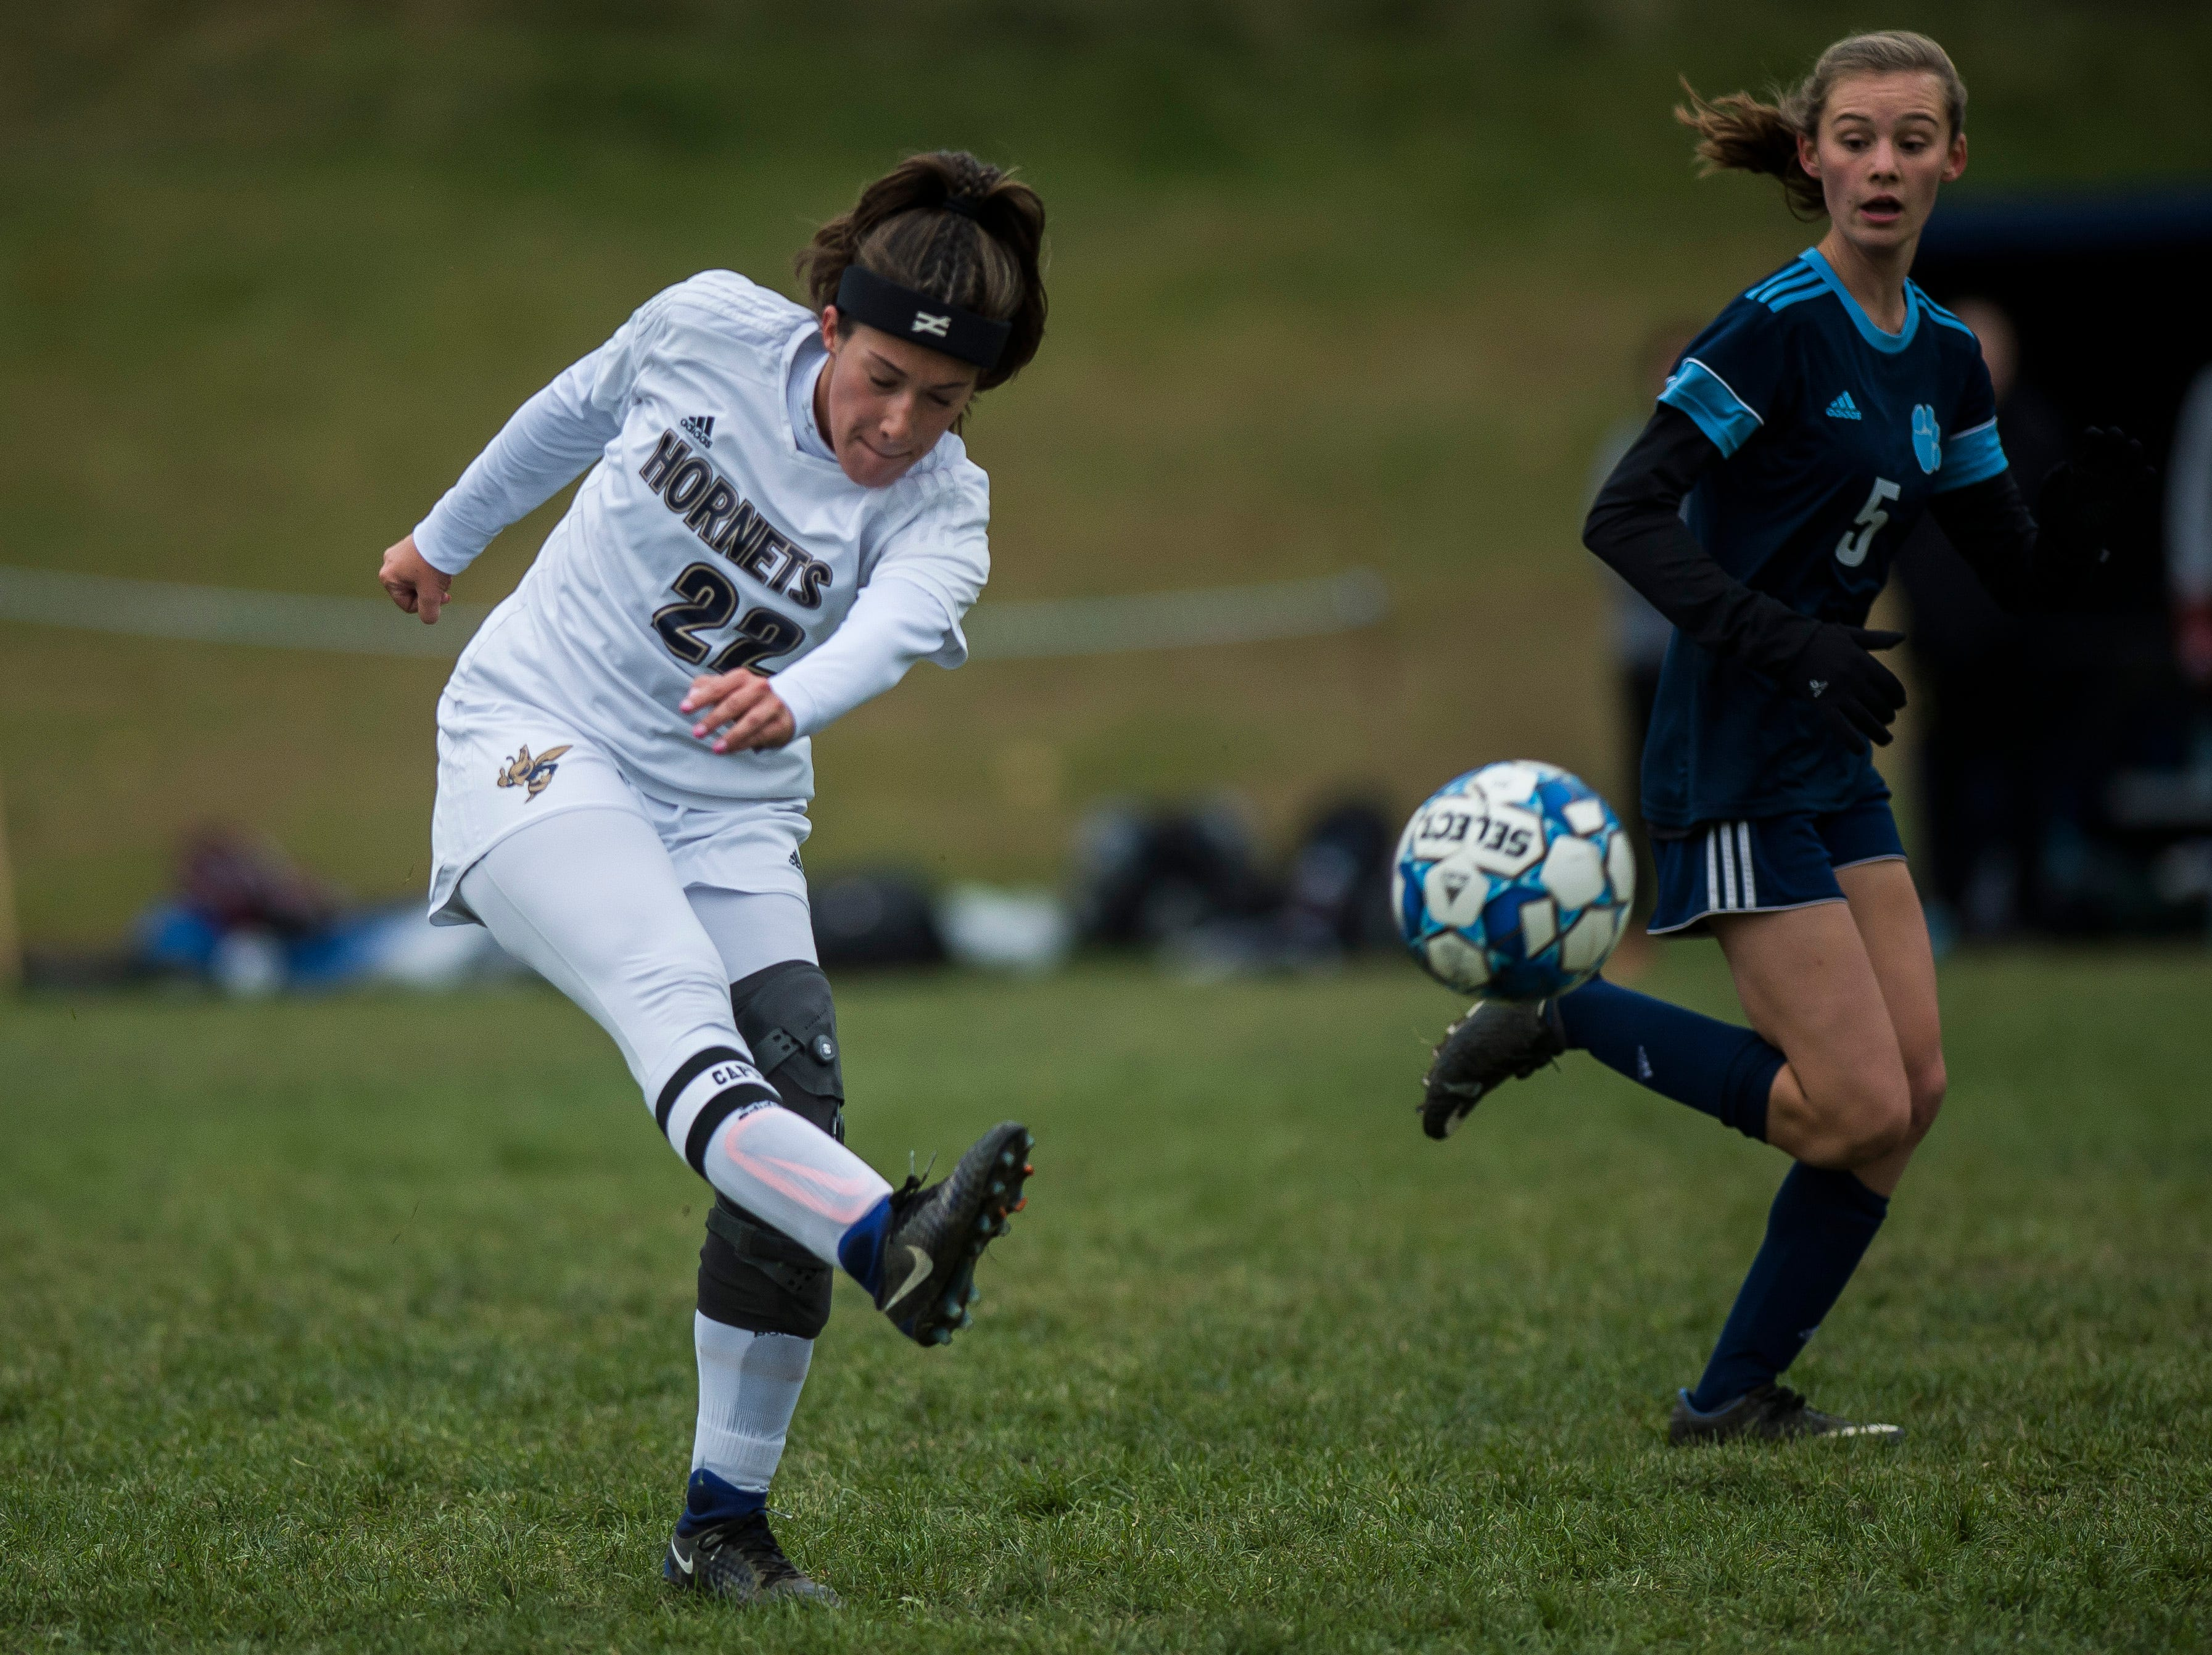 Essex #22 Huntyr Poulin breaks up an offensive push from MMU during their quarter-final game in Jericho on Saturday, Oct. 27, 2018, that went into double overtime and shootout. Essex took the penalty kick contest to win, 4-1.